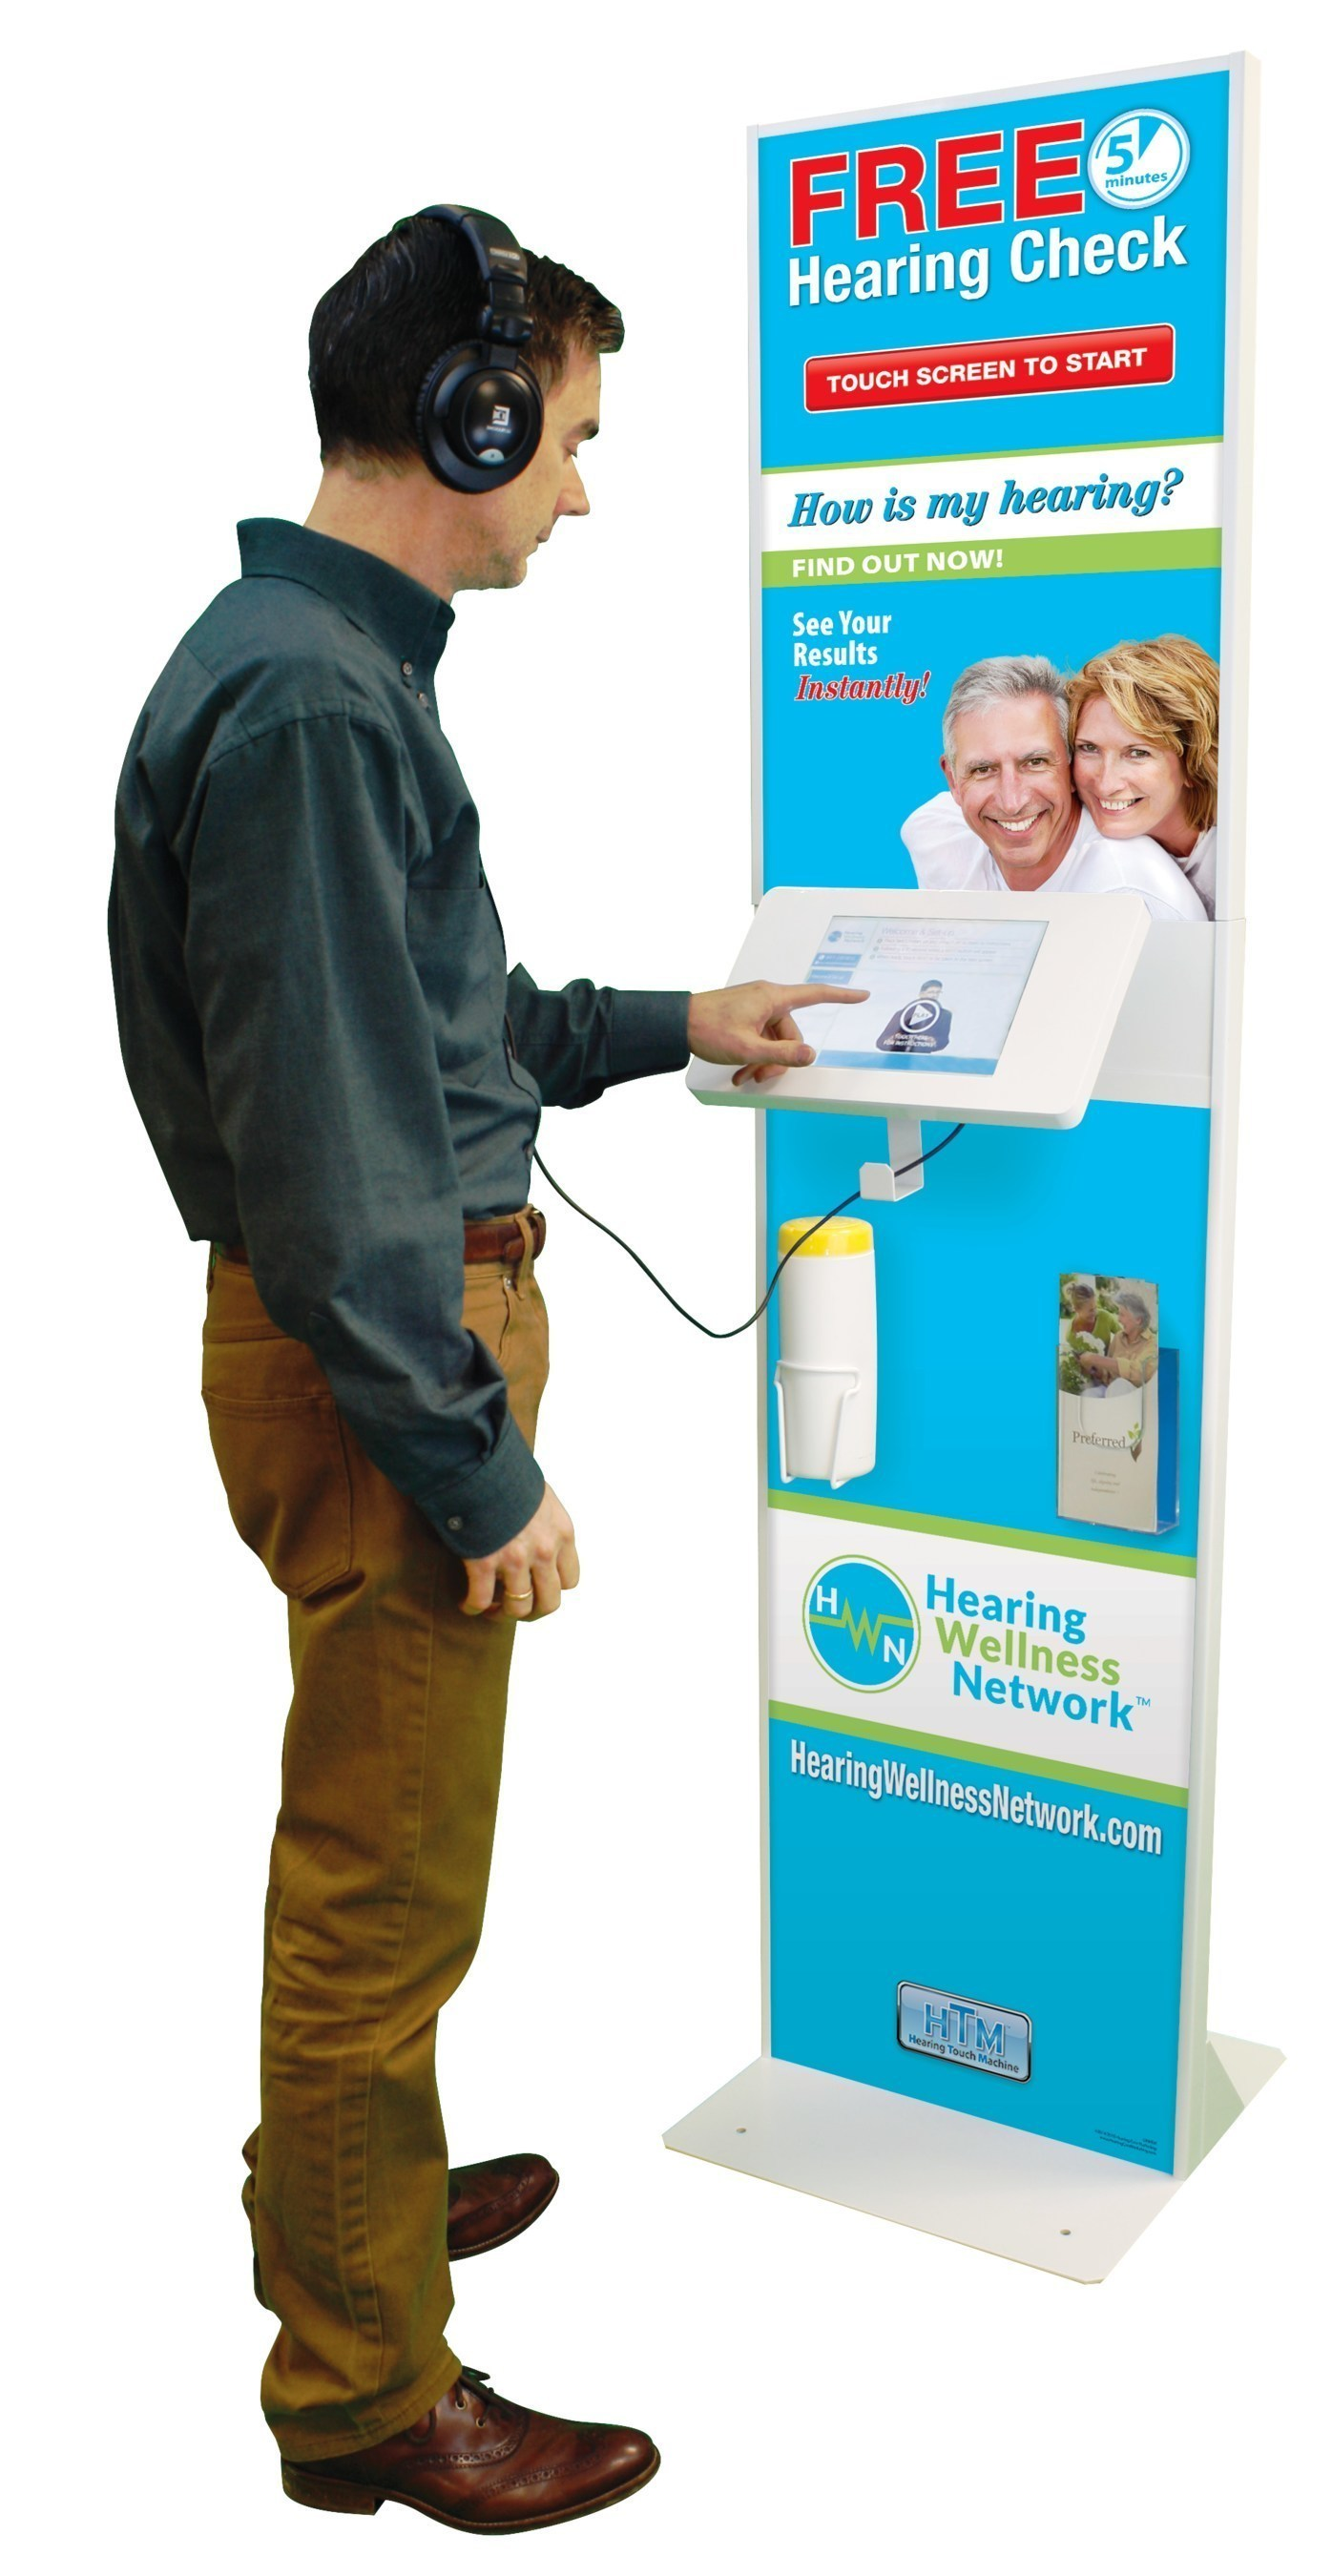 Hearing test kiosk available at 24 Albertsons Companies stores